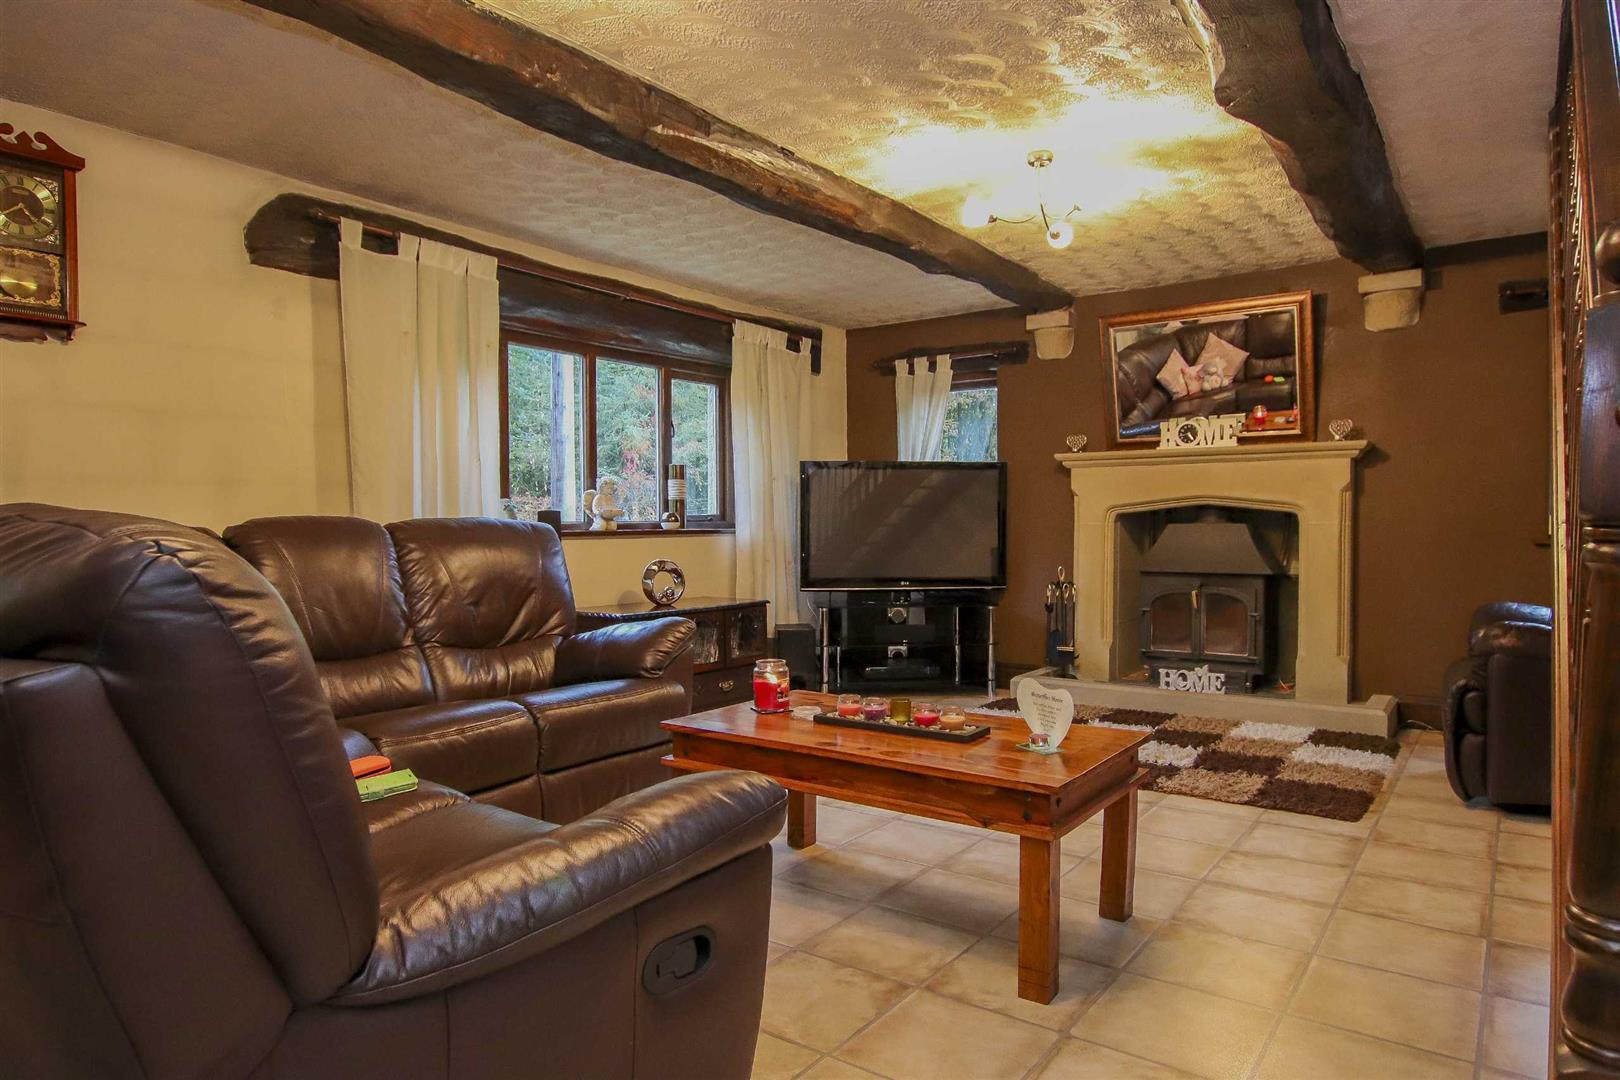 9 Bedroom Barn Conversion For Sale - Image 25